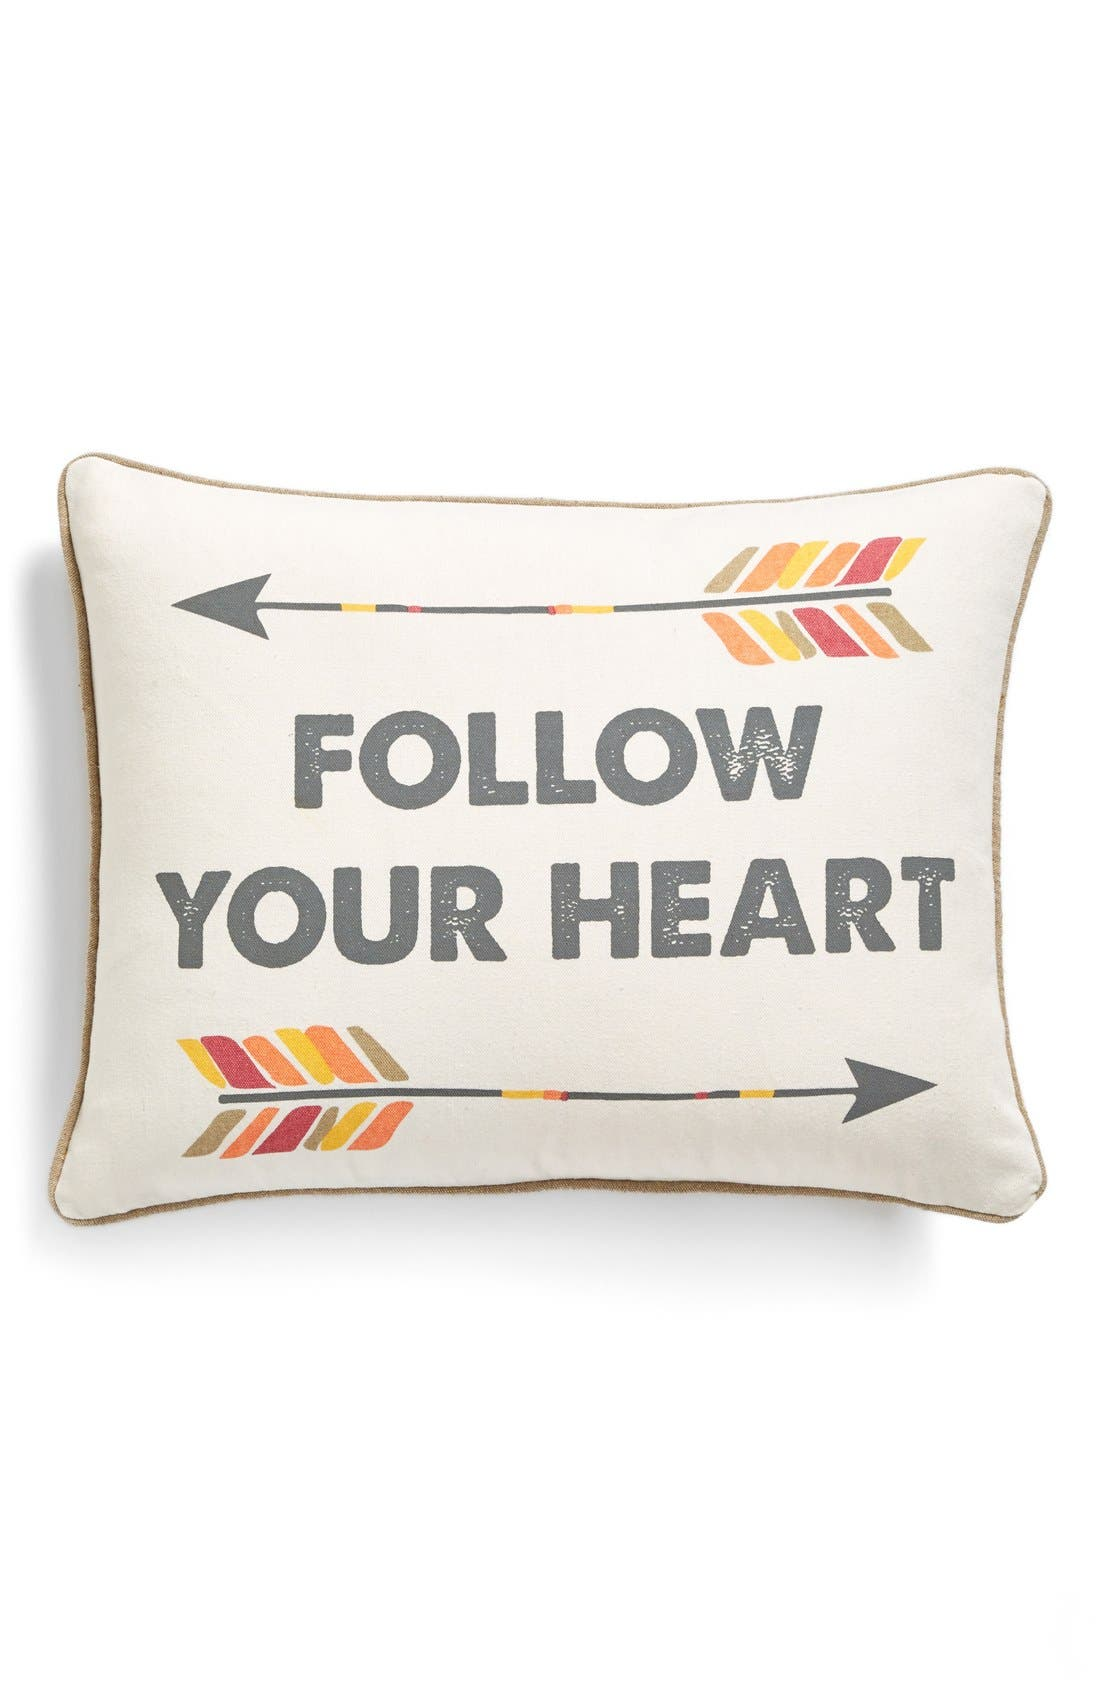 Main Image - Levtex 'Follow Your Heart' Pillow